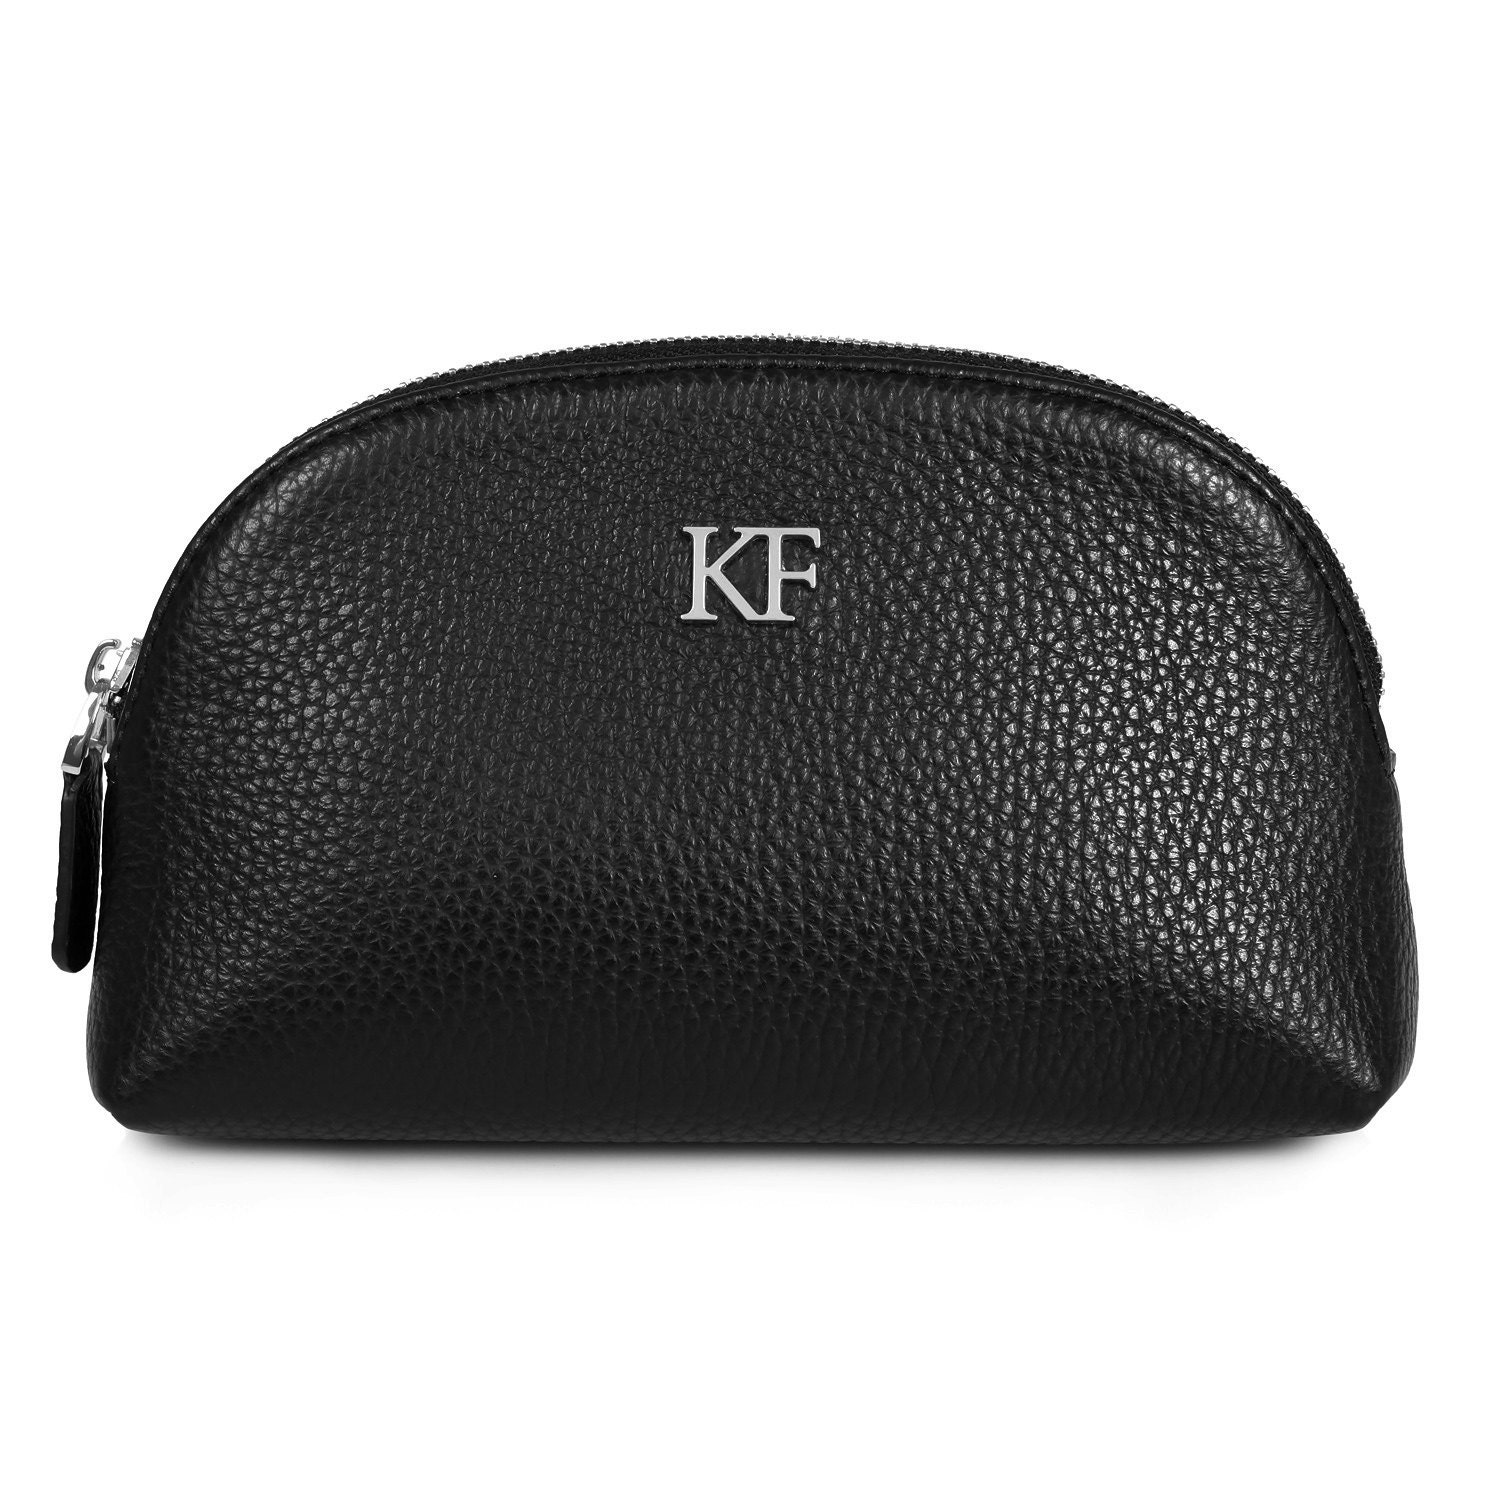 Leather Cosmetic Bag Genuine Black Leather Pouch Leather